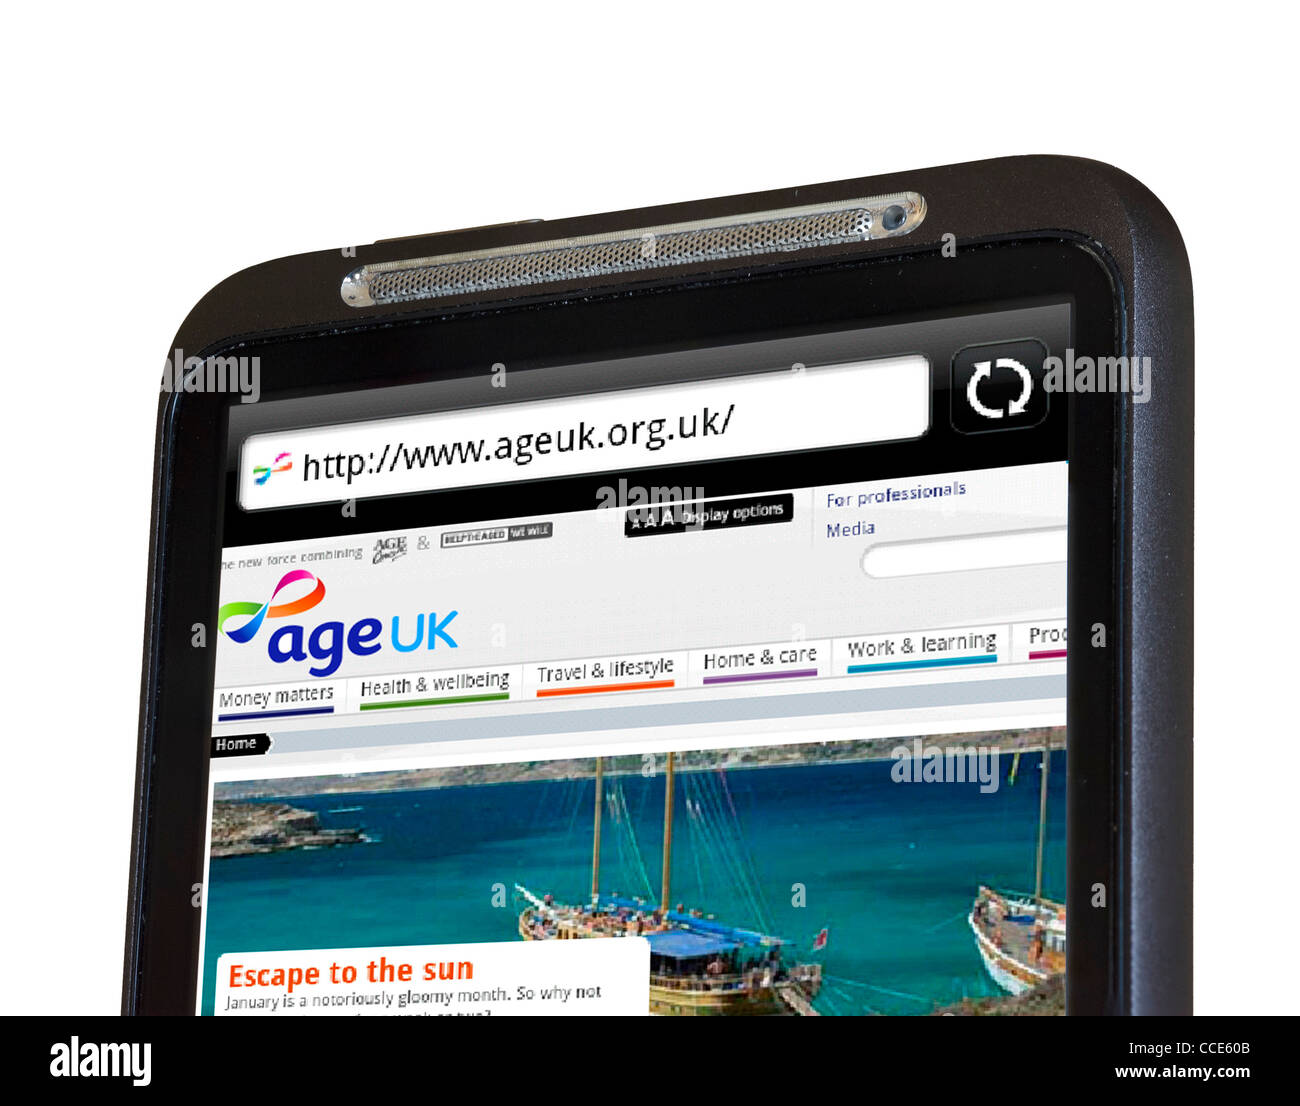 The Age UK charity website (an amalgamation of Age Concern and Help the Aged) viewed on an HTC smartphone - Stock Image